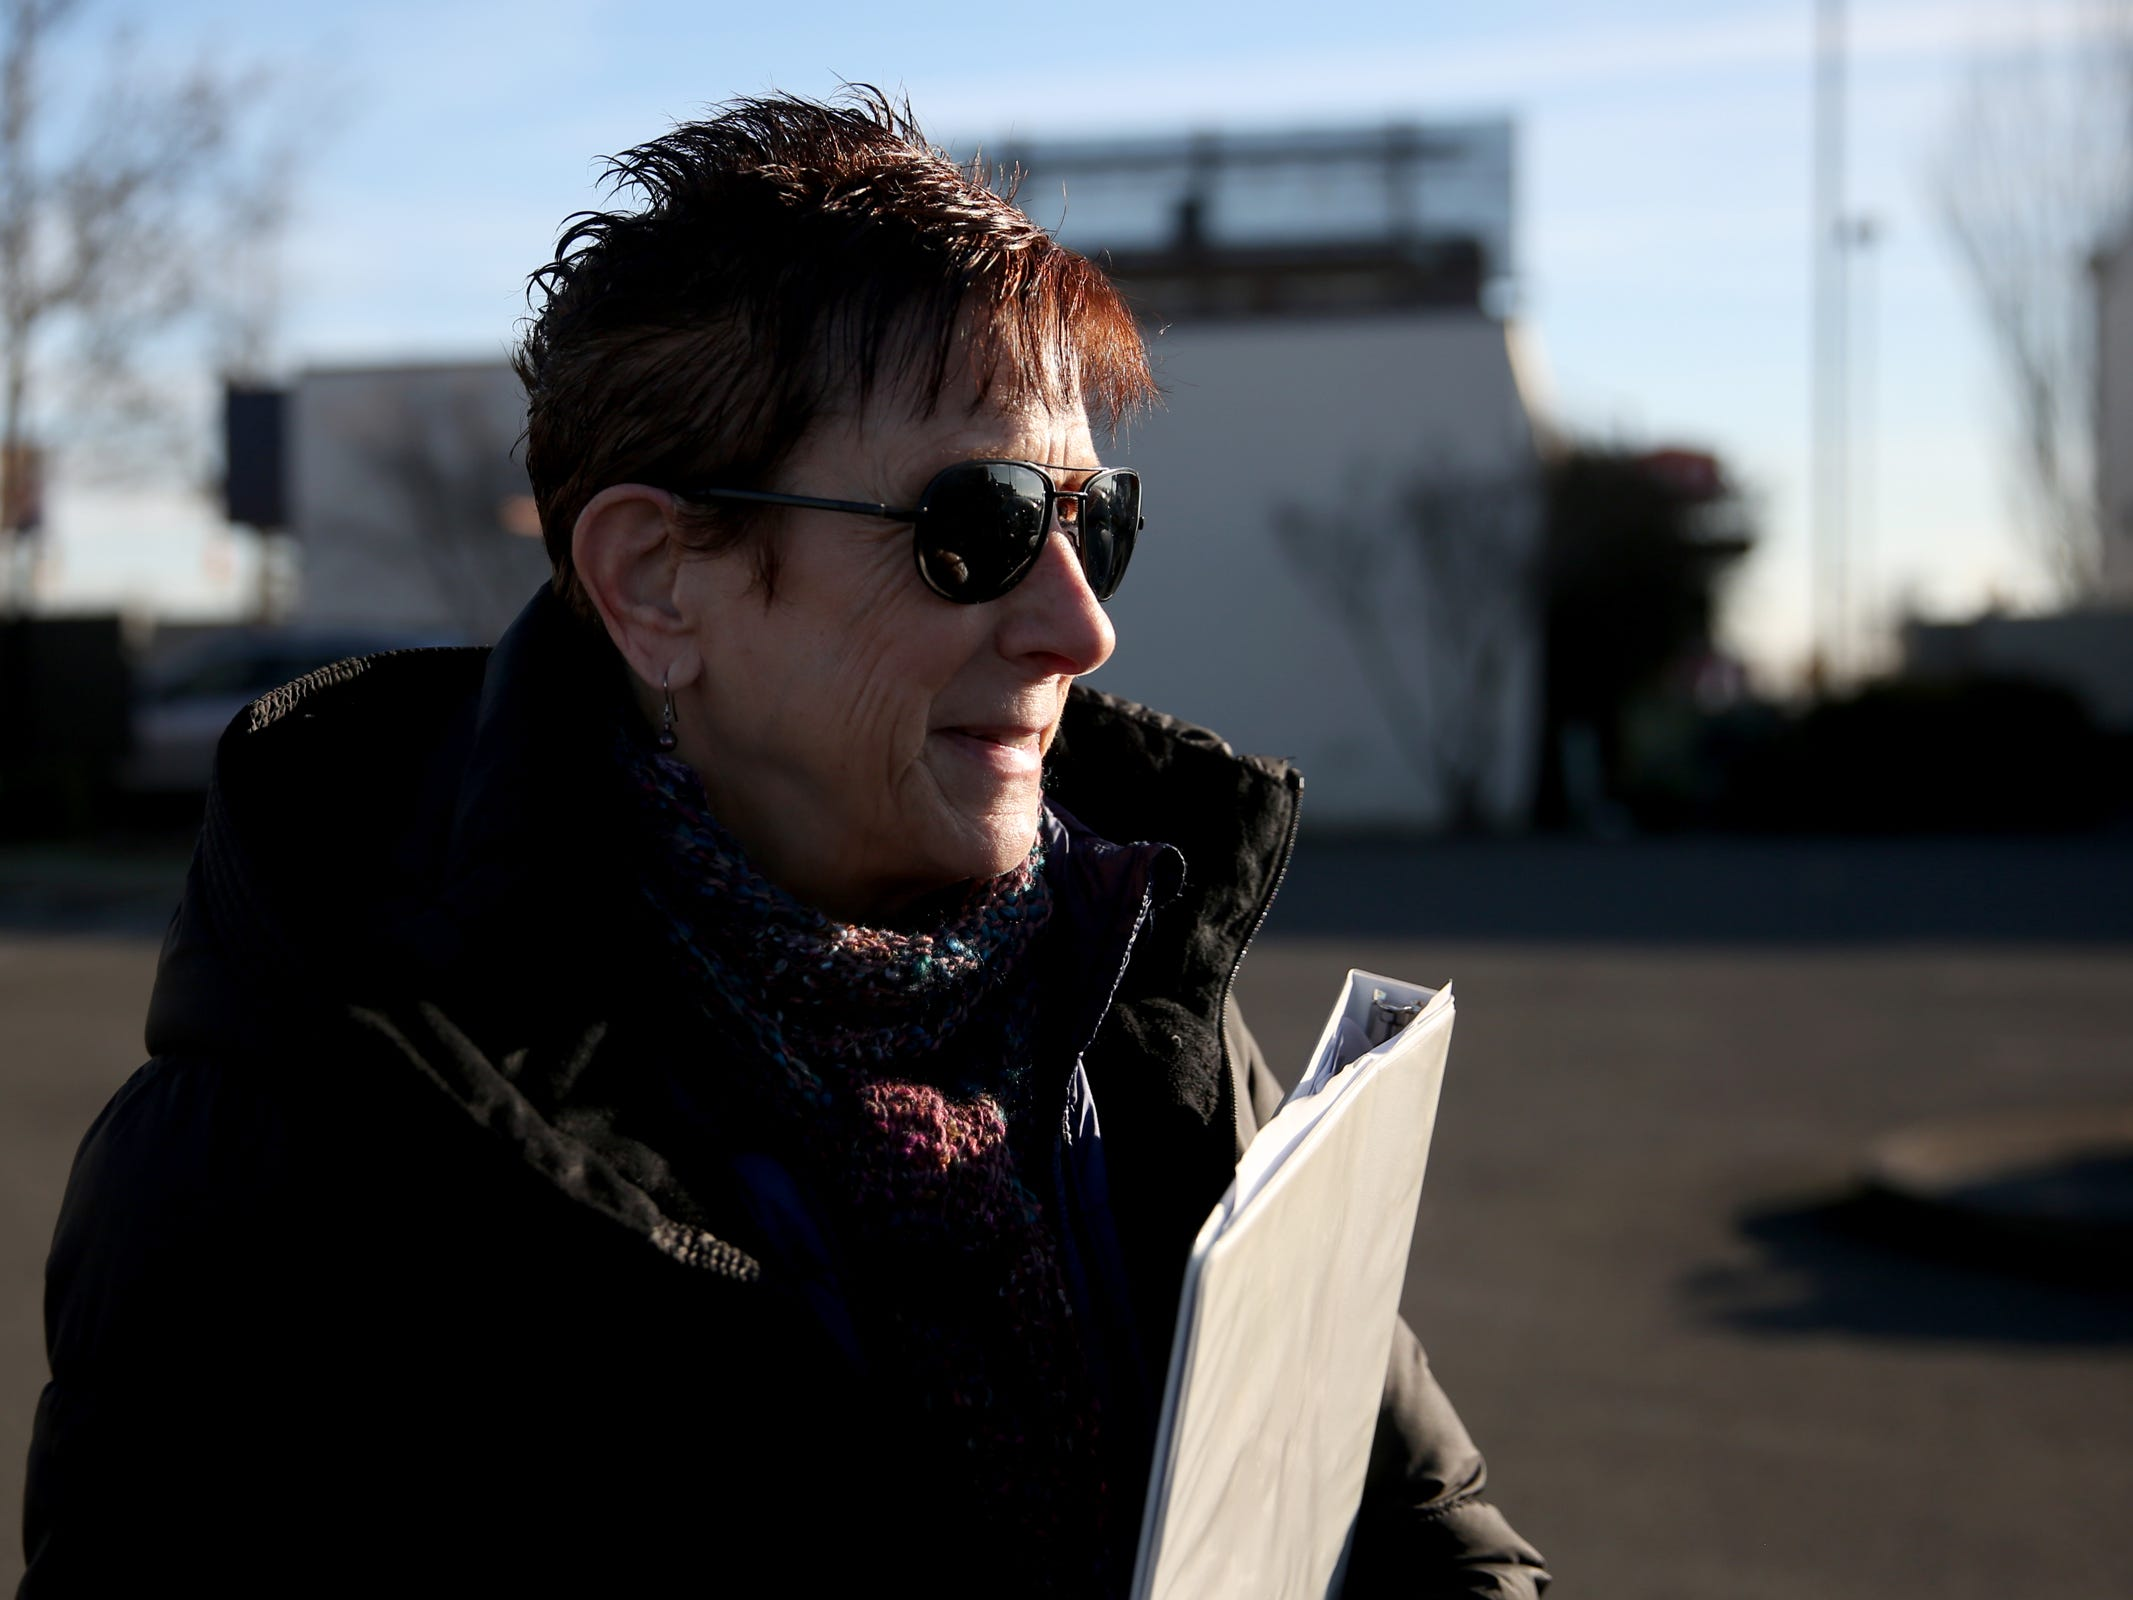 Pamella Watson volunteers during the annual Point-in-Time homeless count in Salem on Wednesday, Jan. 30, 2019. The number of people counted helps local programs qualify for federal funds to combat homelessness.